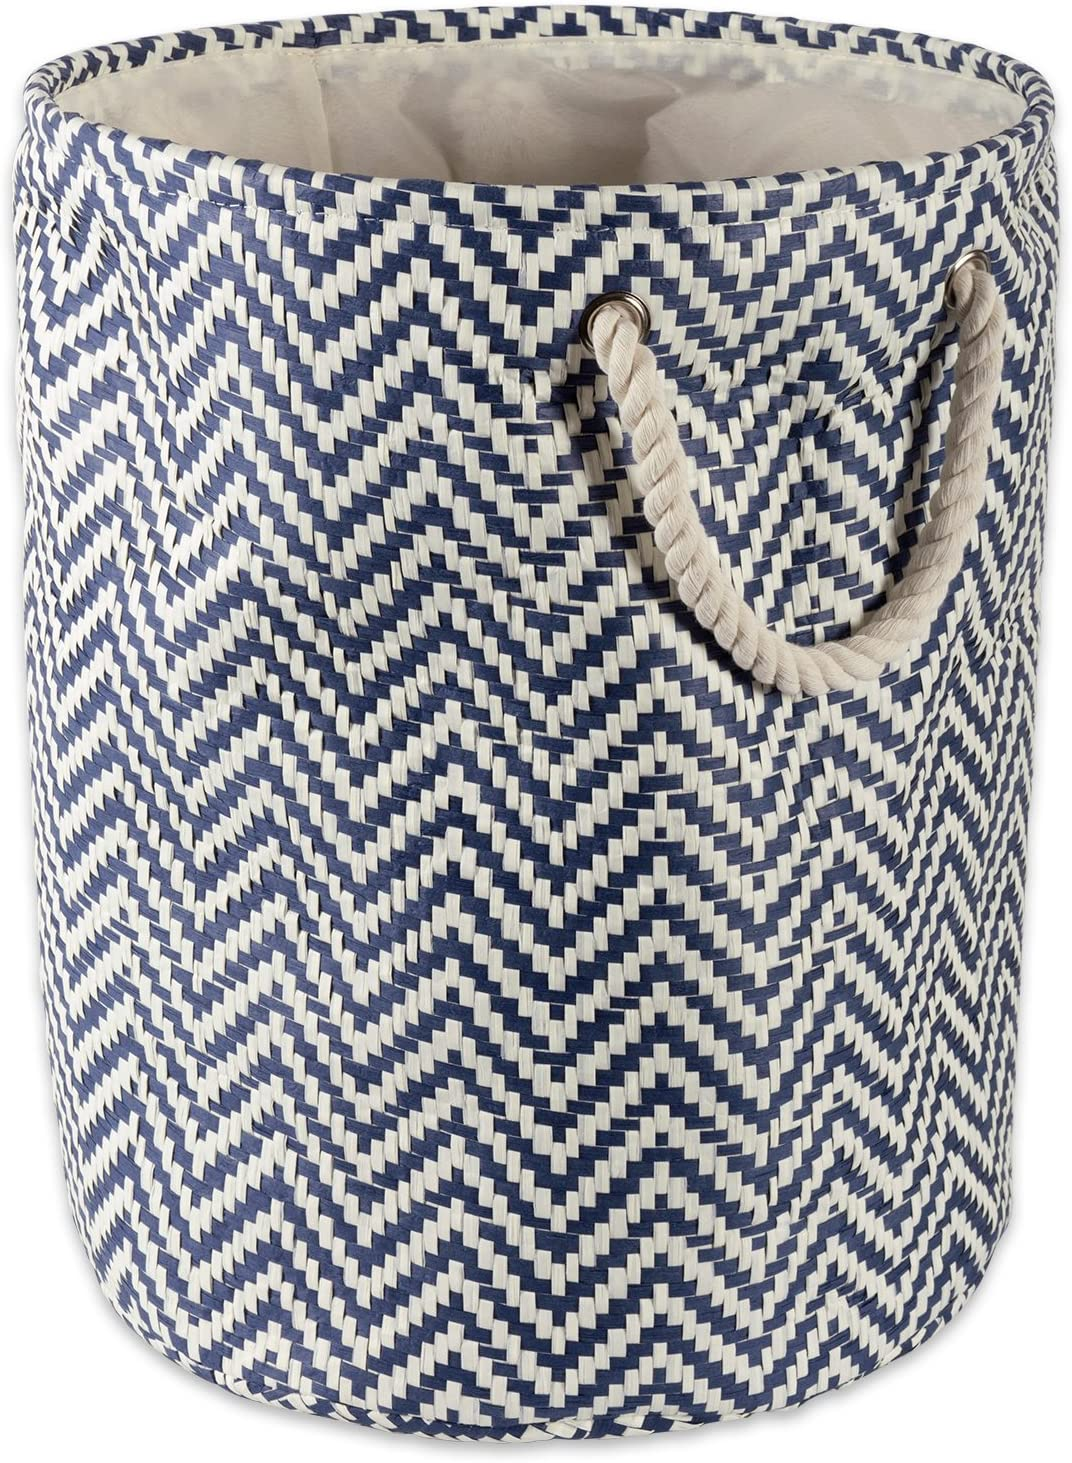 "DII Woven Paper Basket or Bin, Collapsible & Convenient Organization & Storage Solution for Your Home (Large Round - 15x20"") - Nautical Blue Chevron"